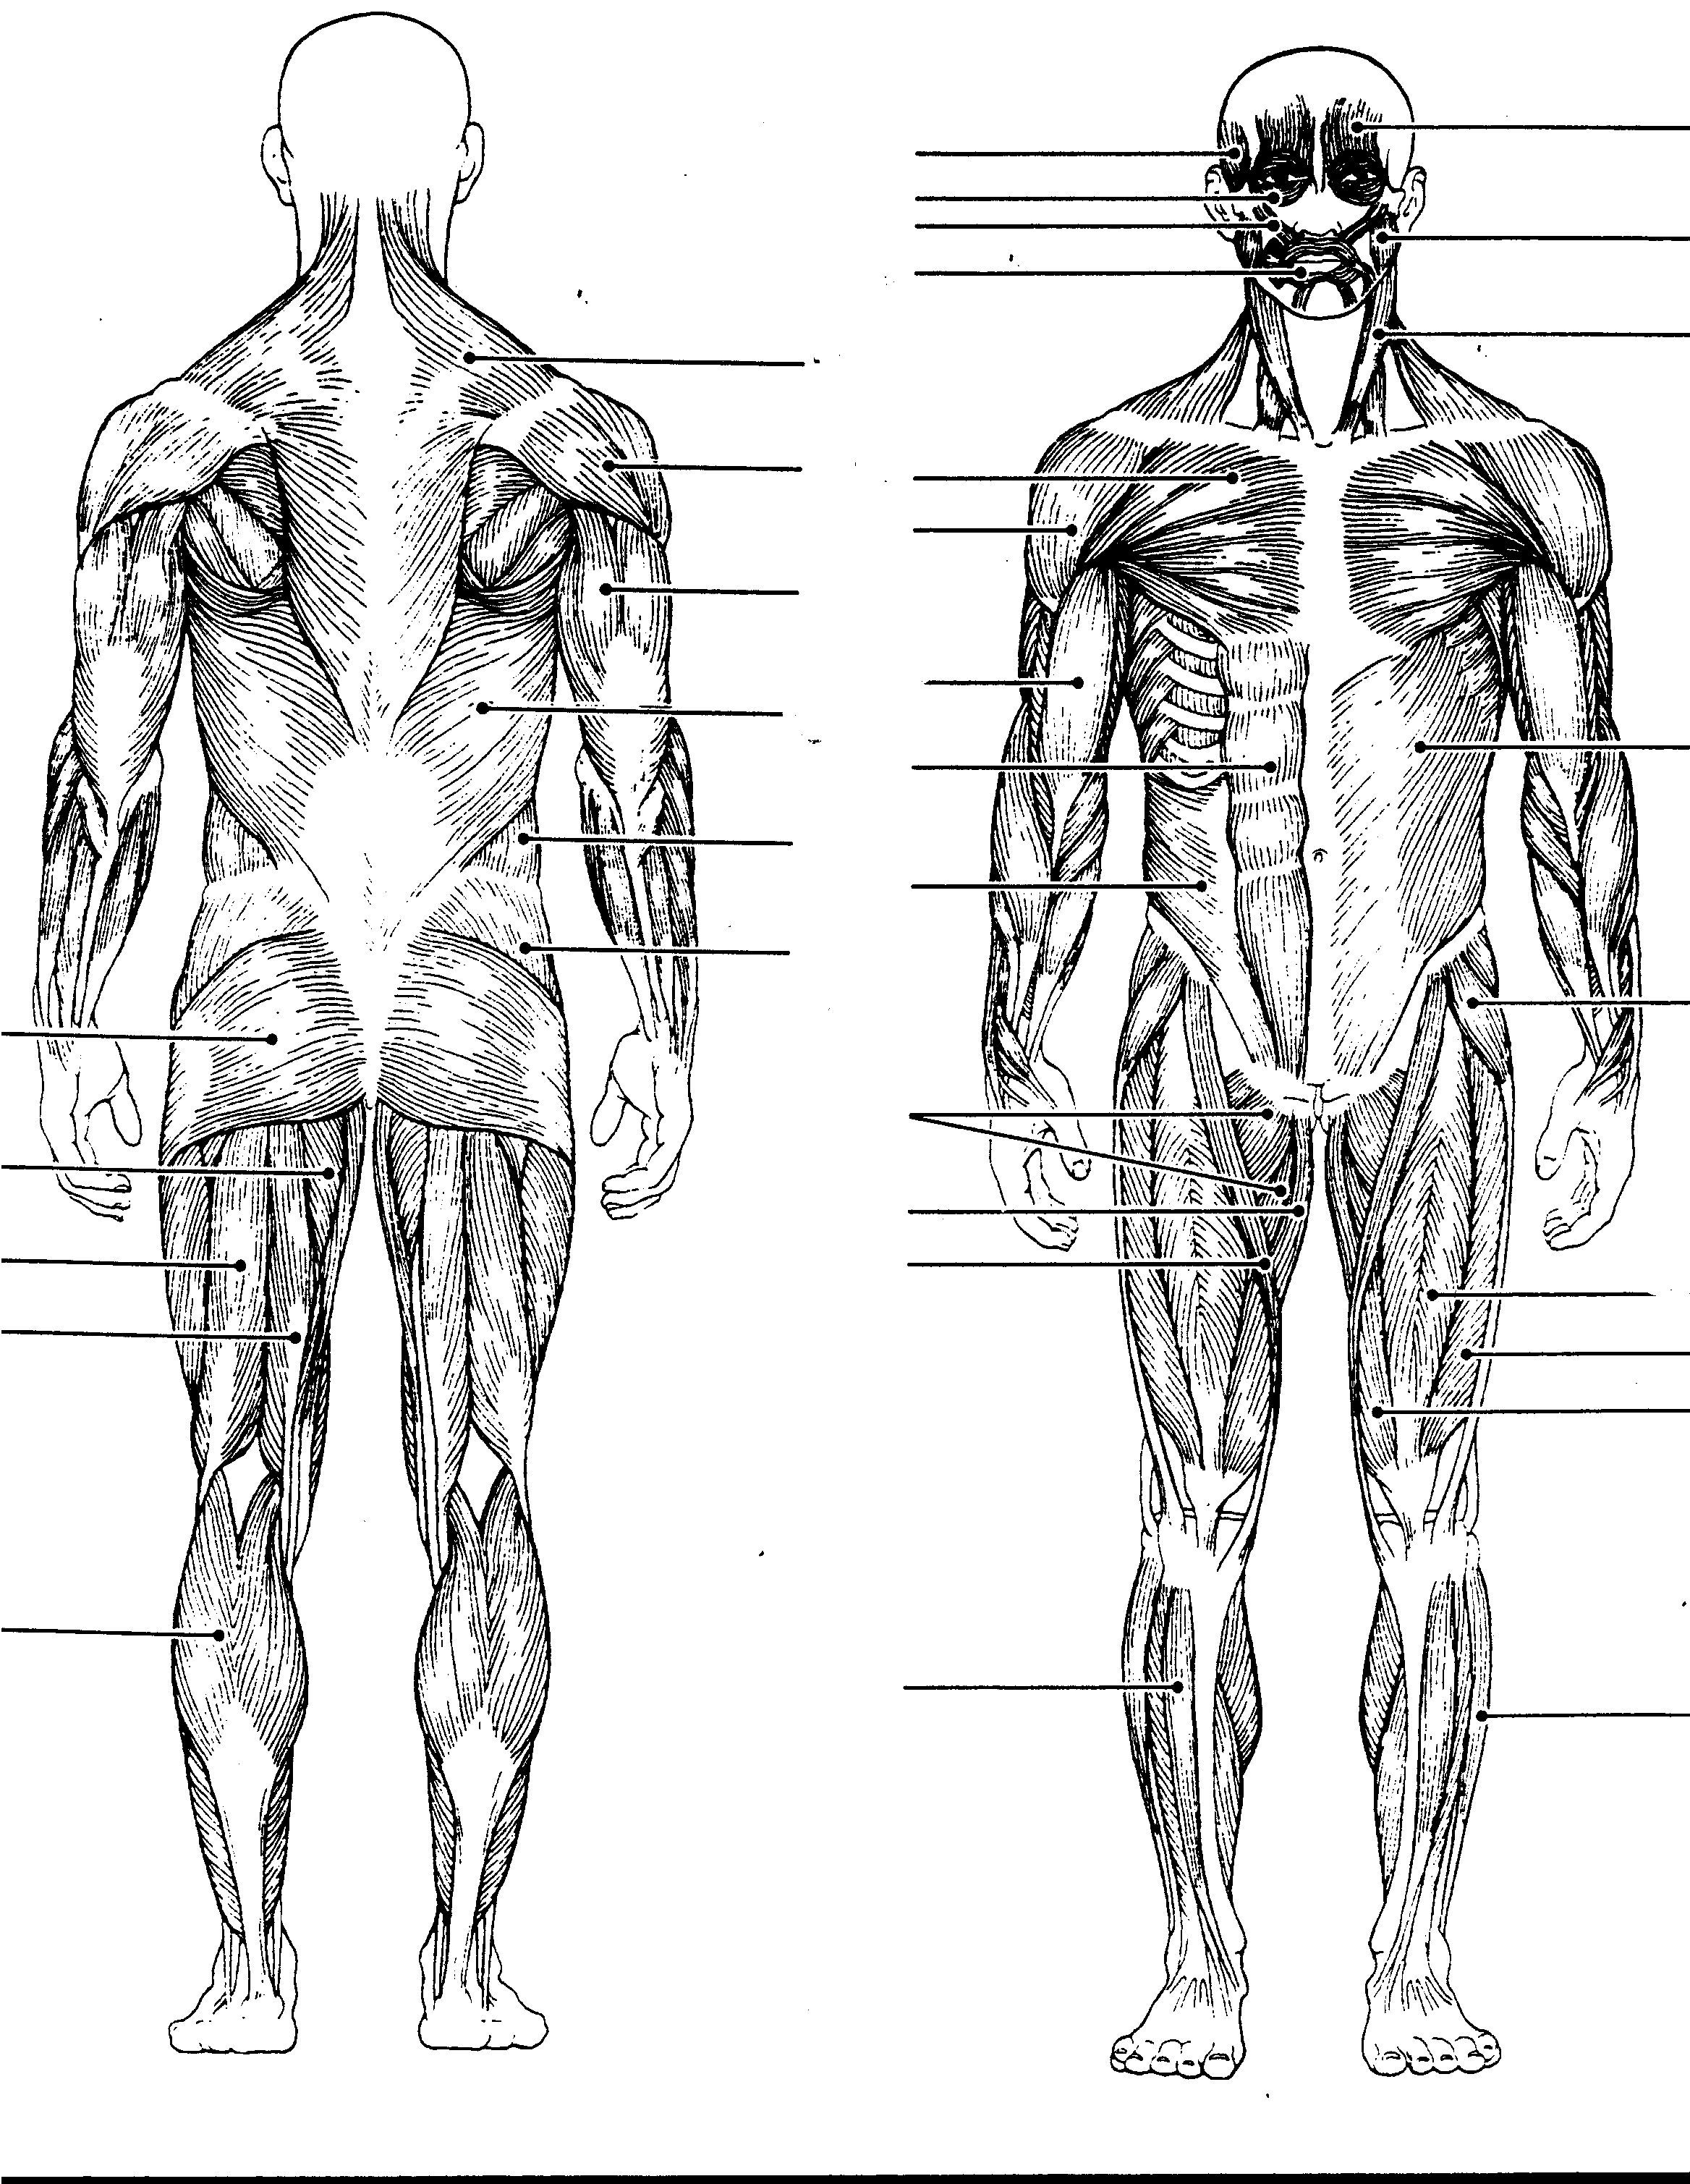 muscular system diagram blank muscular system diagram with labels blank knee joint diagram blank joint diagram [ 2336 x 3018 Pixel ]